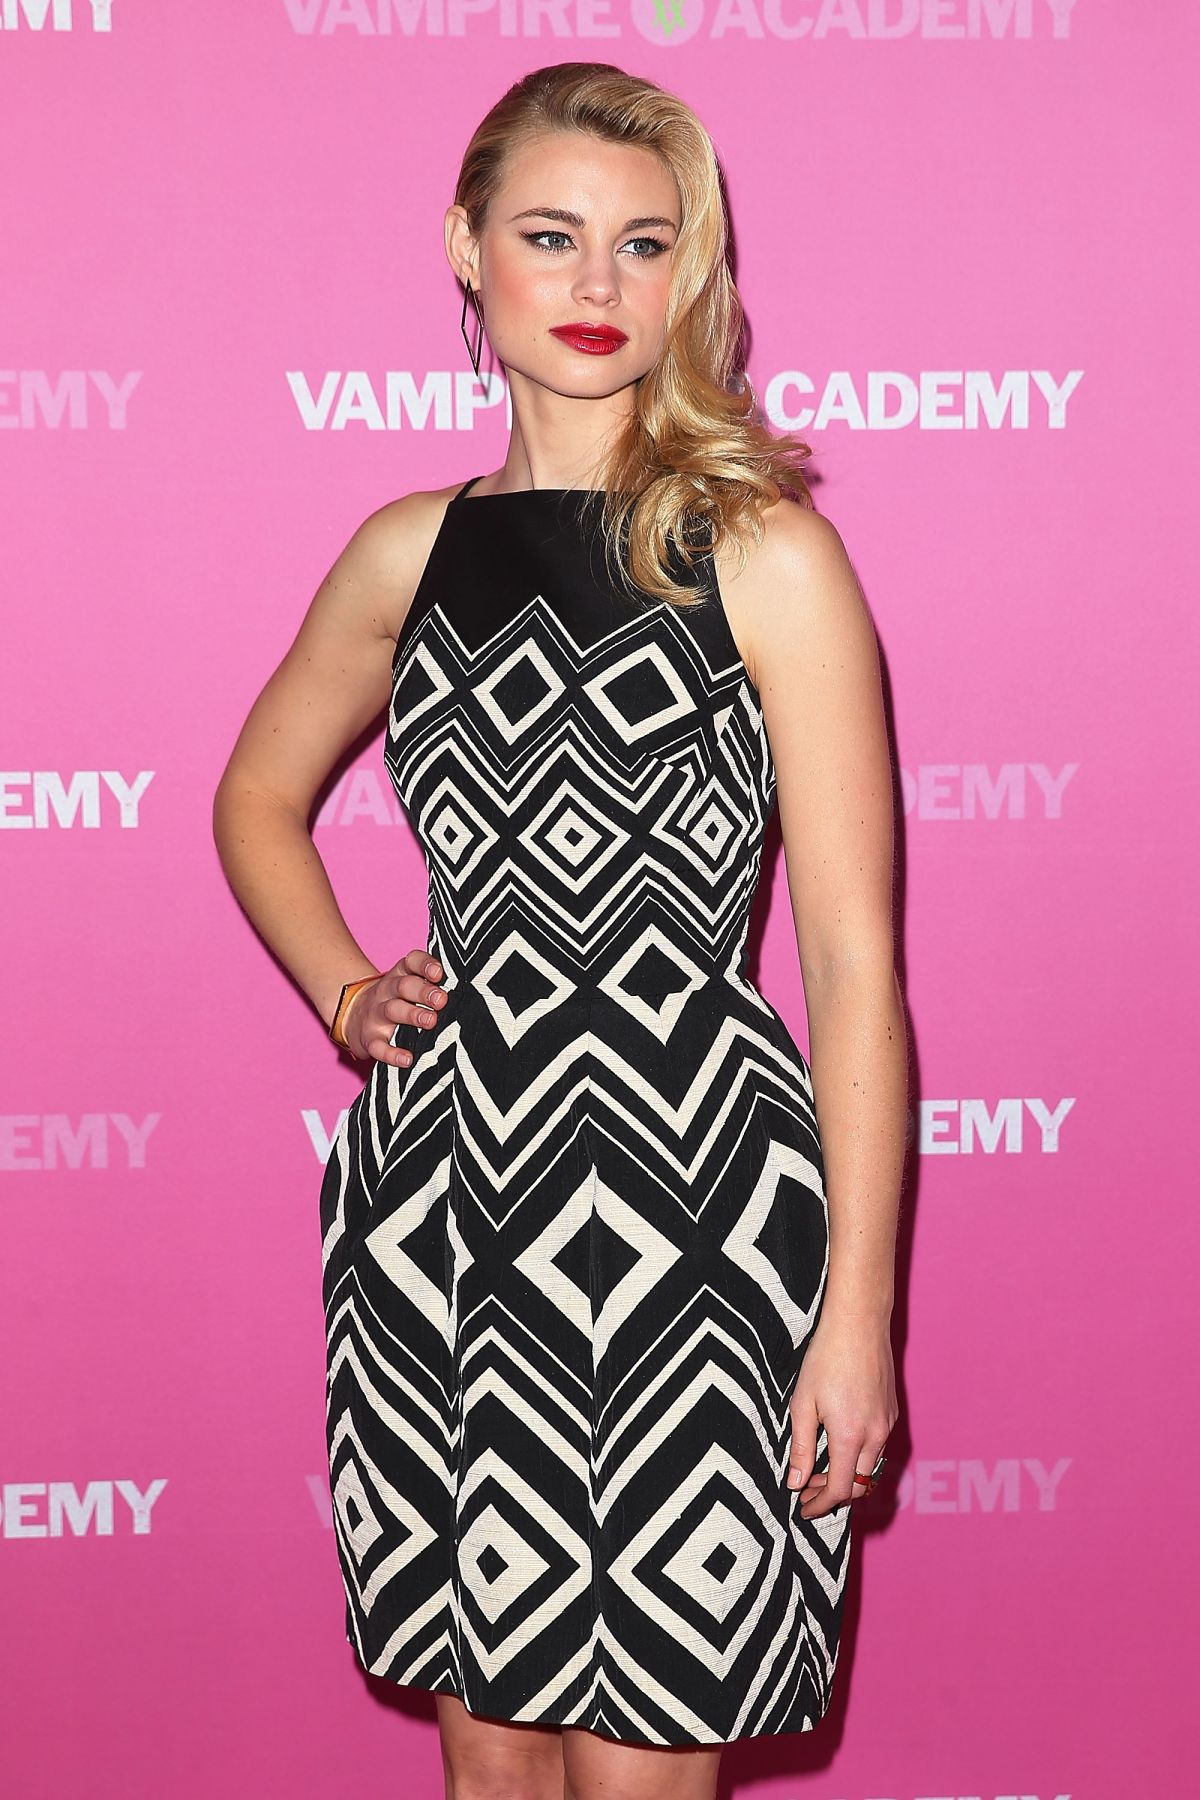 LUCY FRY at Vampire Academy Premiere in Sydney